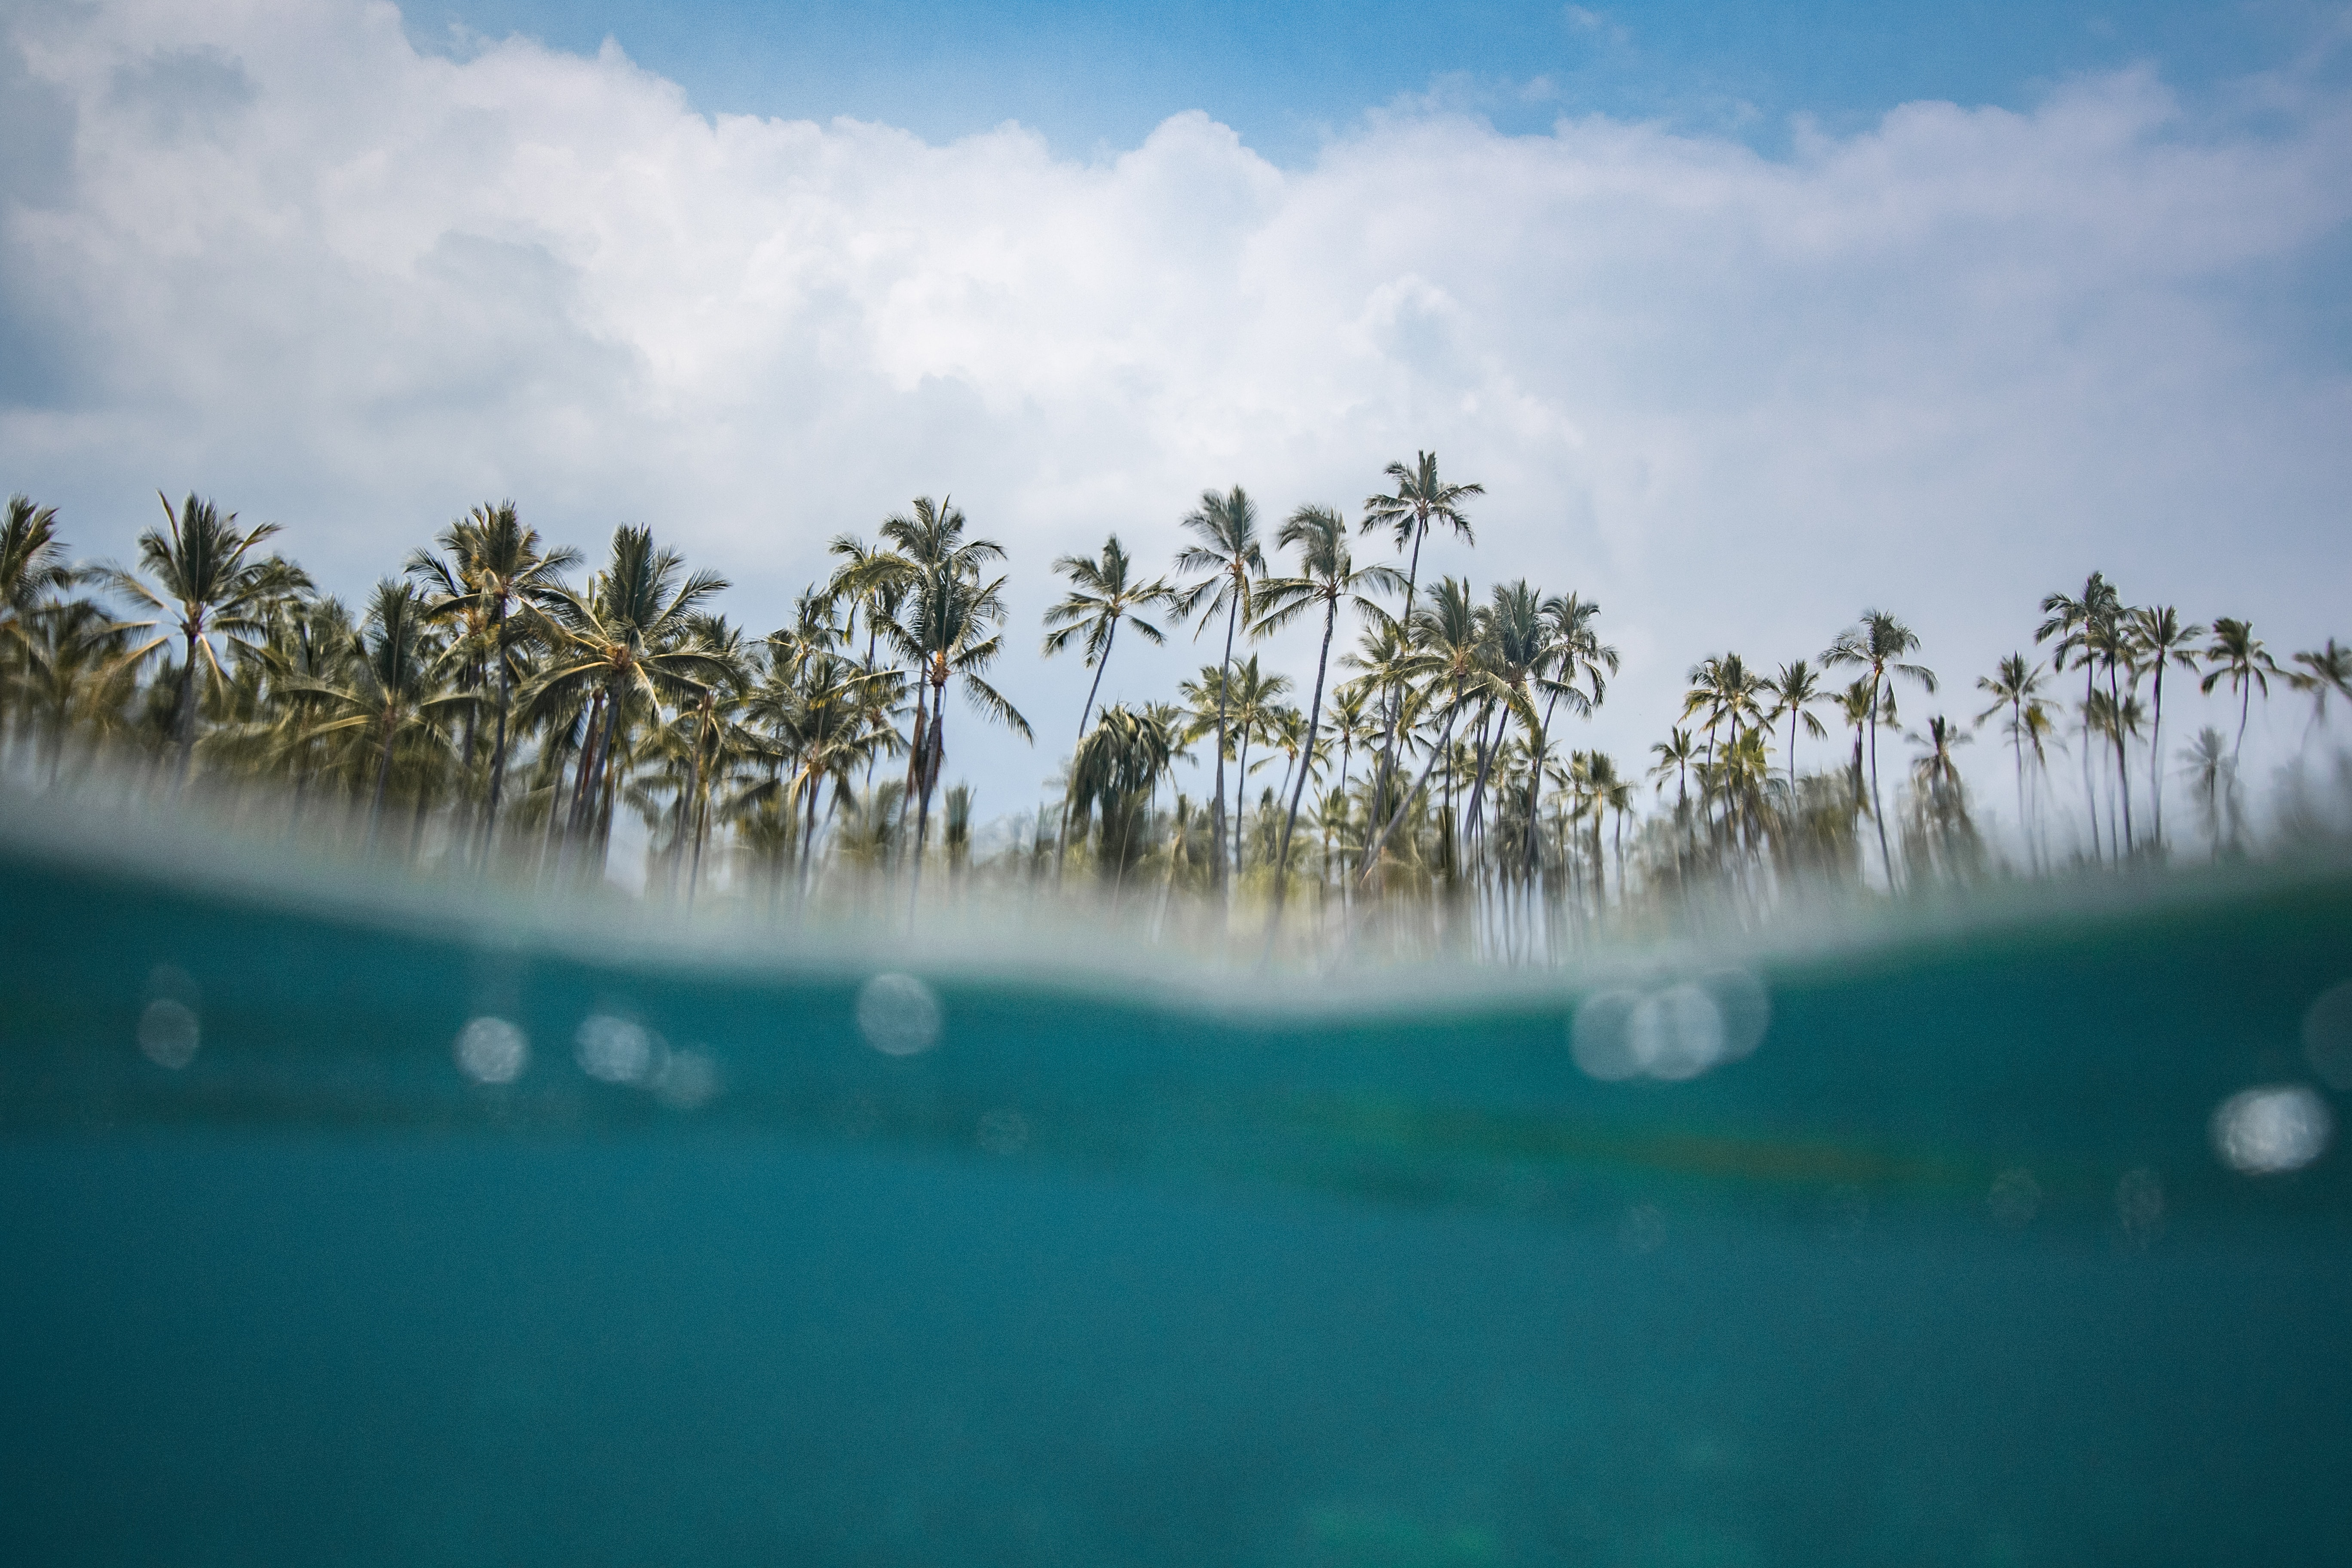 split photography of body of water and coconut trees